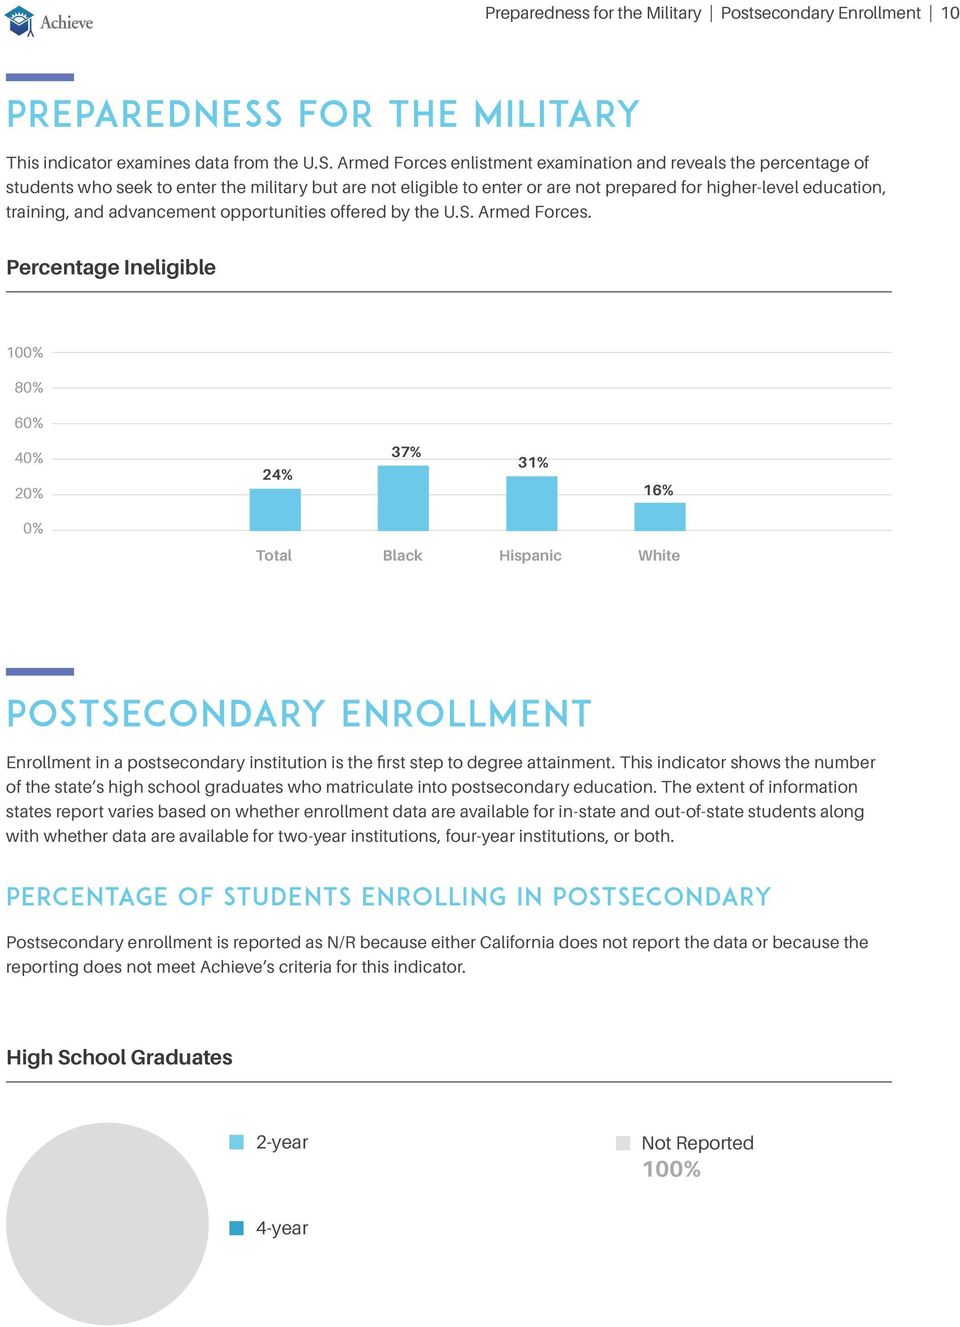 Armed Forces enlistment examination and reveals the percentage of students who seek to enter the military but are not eligible to enter or are not prepared for higher-level education, training, and